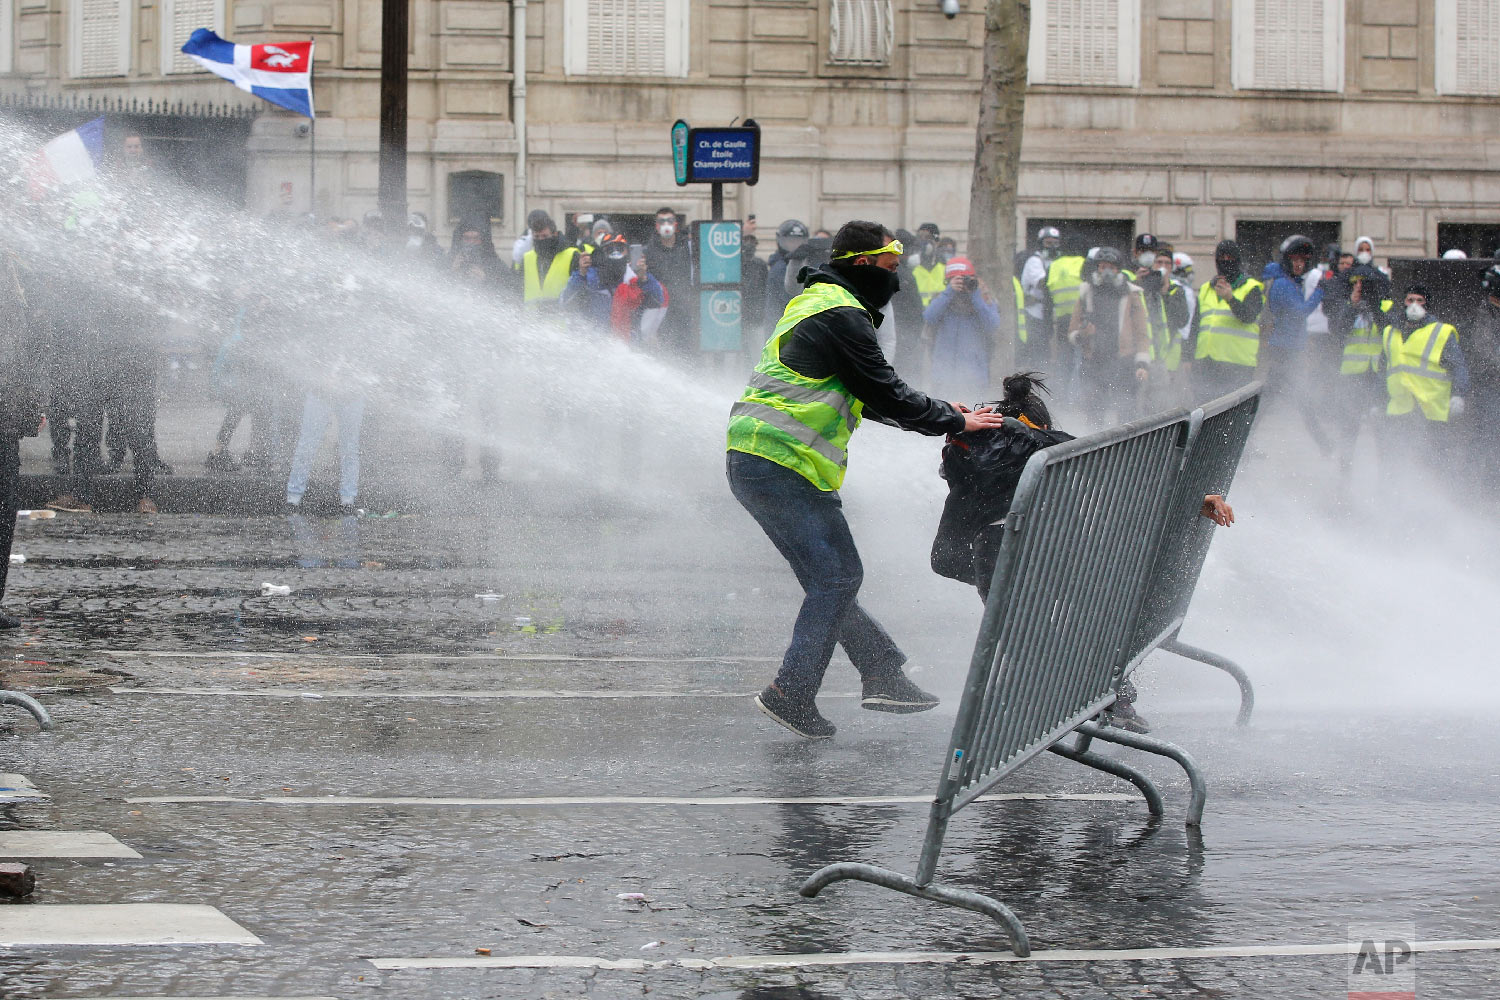 A yellow vests demonstrator rescues another one as police forces use water cannons, March 16, 2019, in Paris. (AP Photo/Christophe Ena)